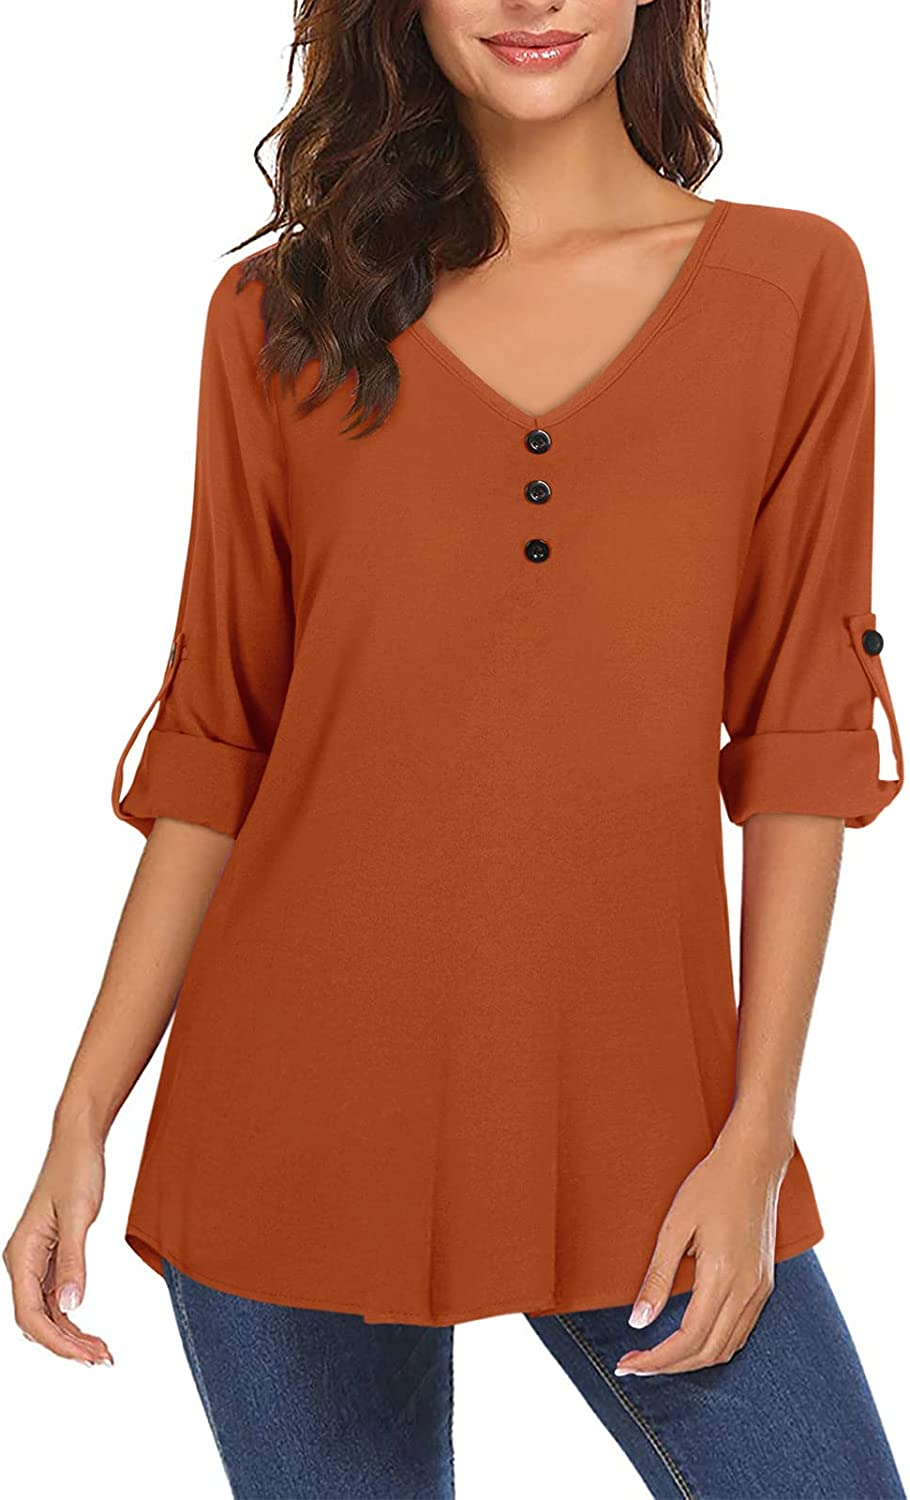 Moyabo Women's 3/4 Cuffed Sleeve Button Down V Neck Shirts Long Sleeve Blouse Casual Solid Chiffon Blouse Tops